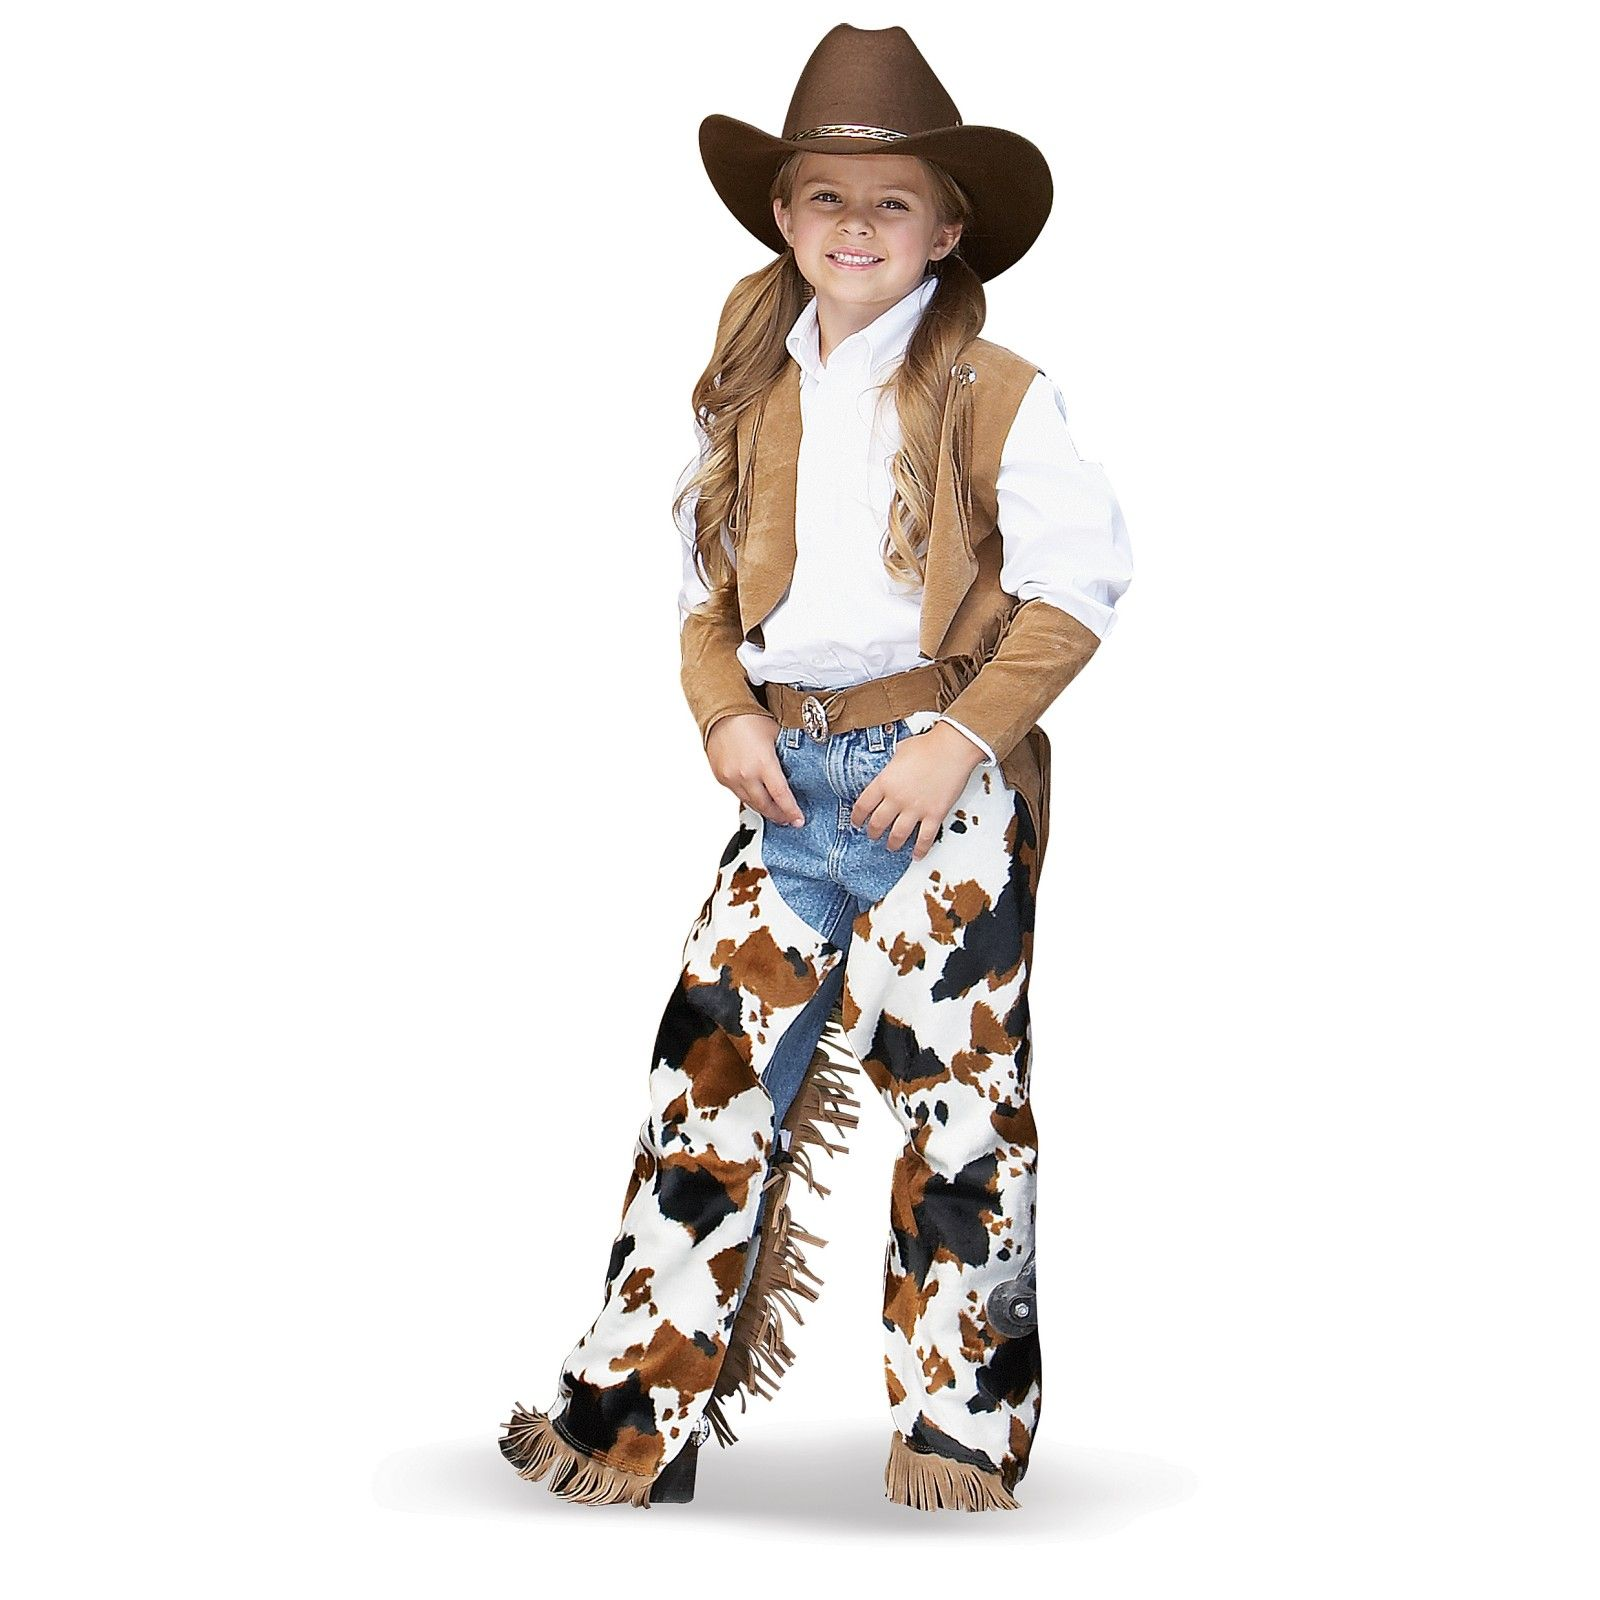 6a61e98cf01fa Giddy up and ride  em Cowgirl! They ll be raring to wrangle some cattle in  this get up. Perfect for a wild western themed Halloween!